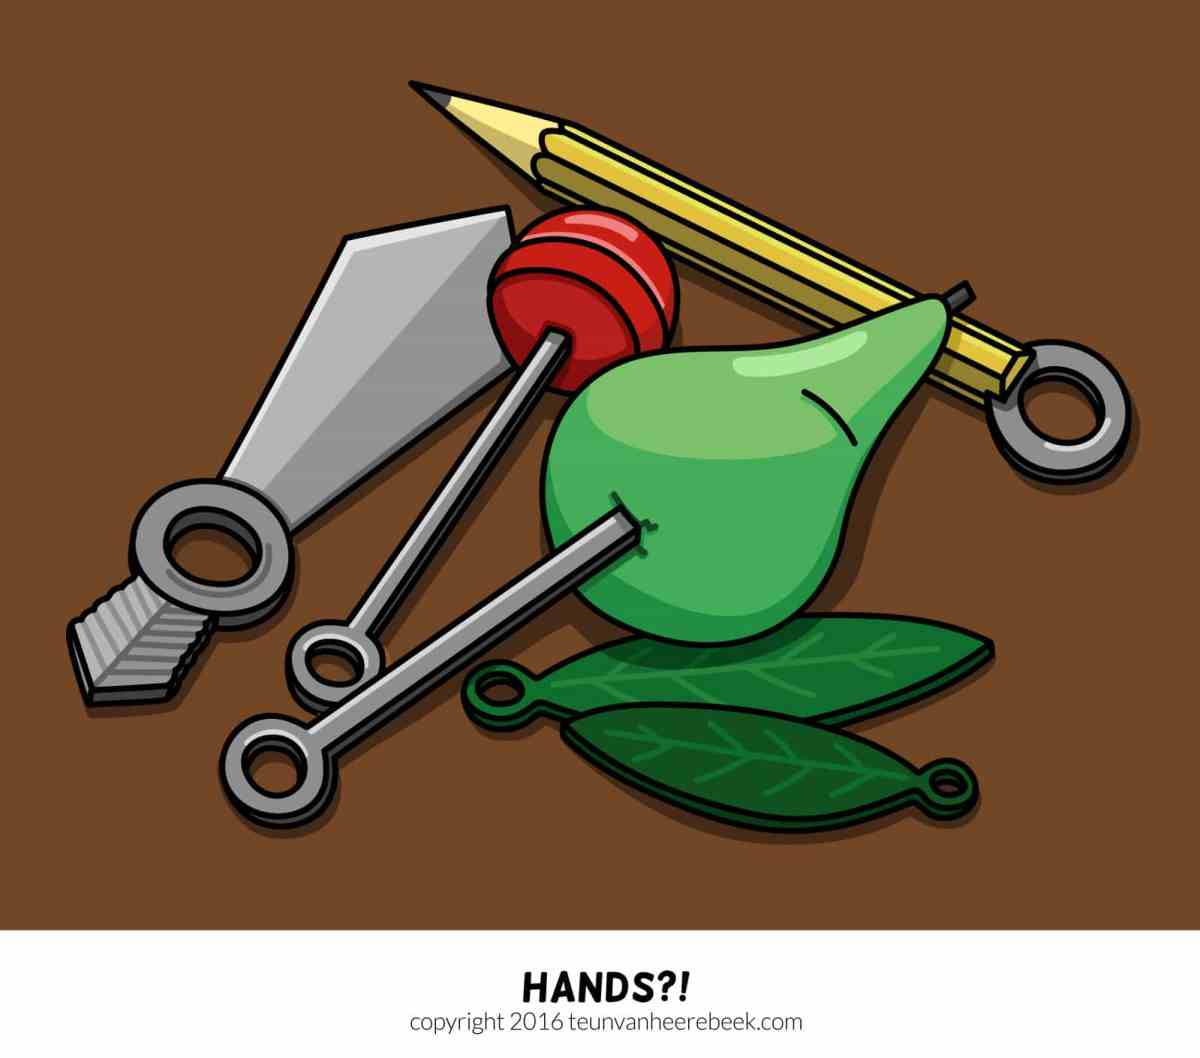 2016-09-12_hands-website